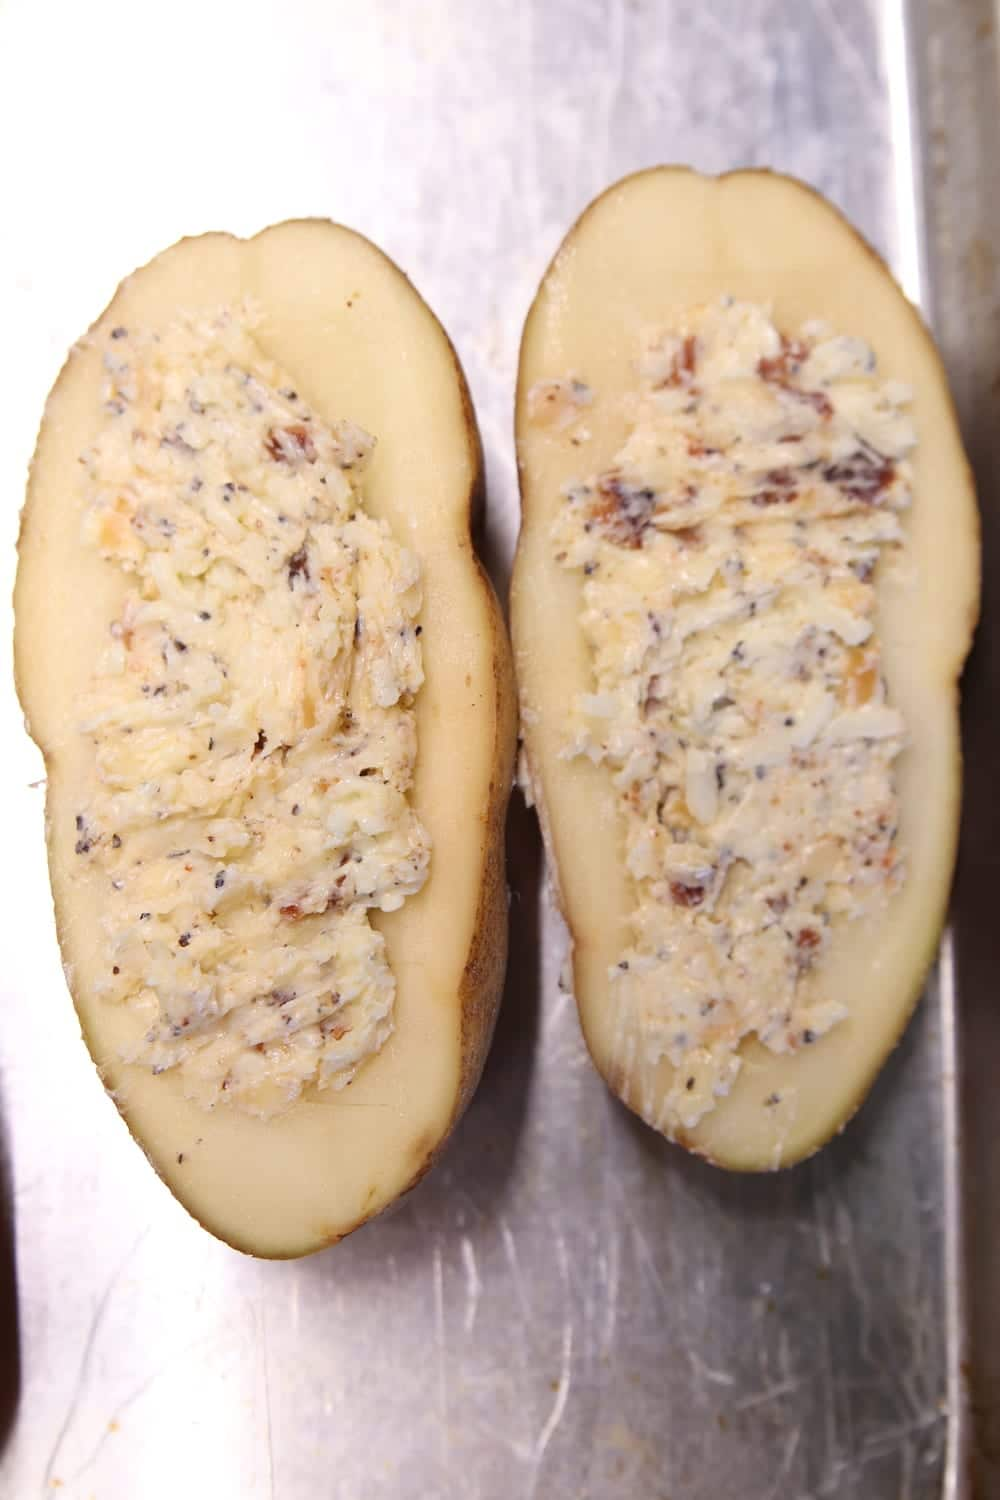 russet potato cut in half, stuffed with bacon, cheese and butter